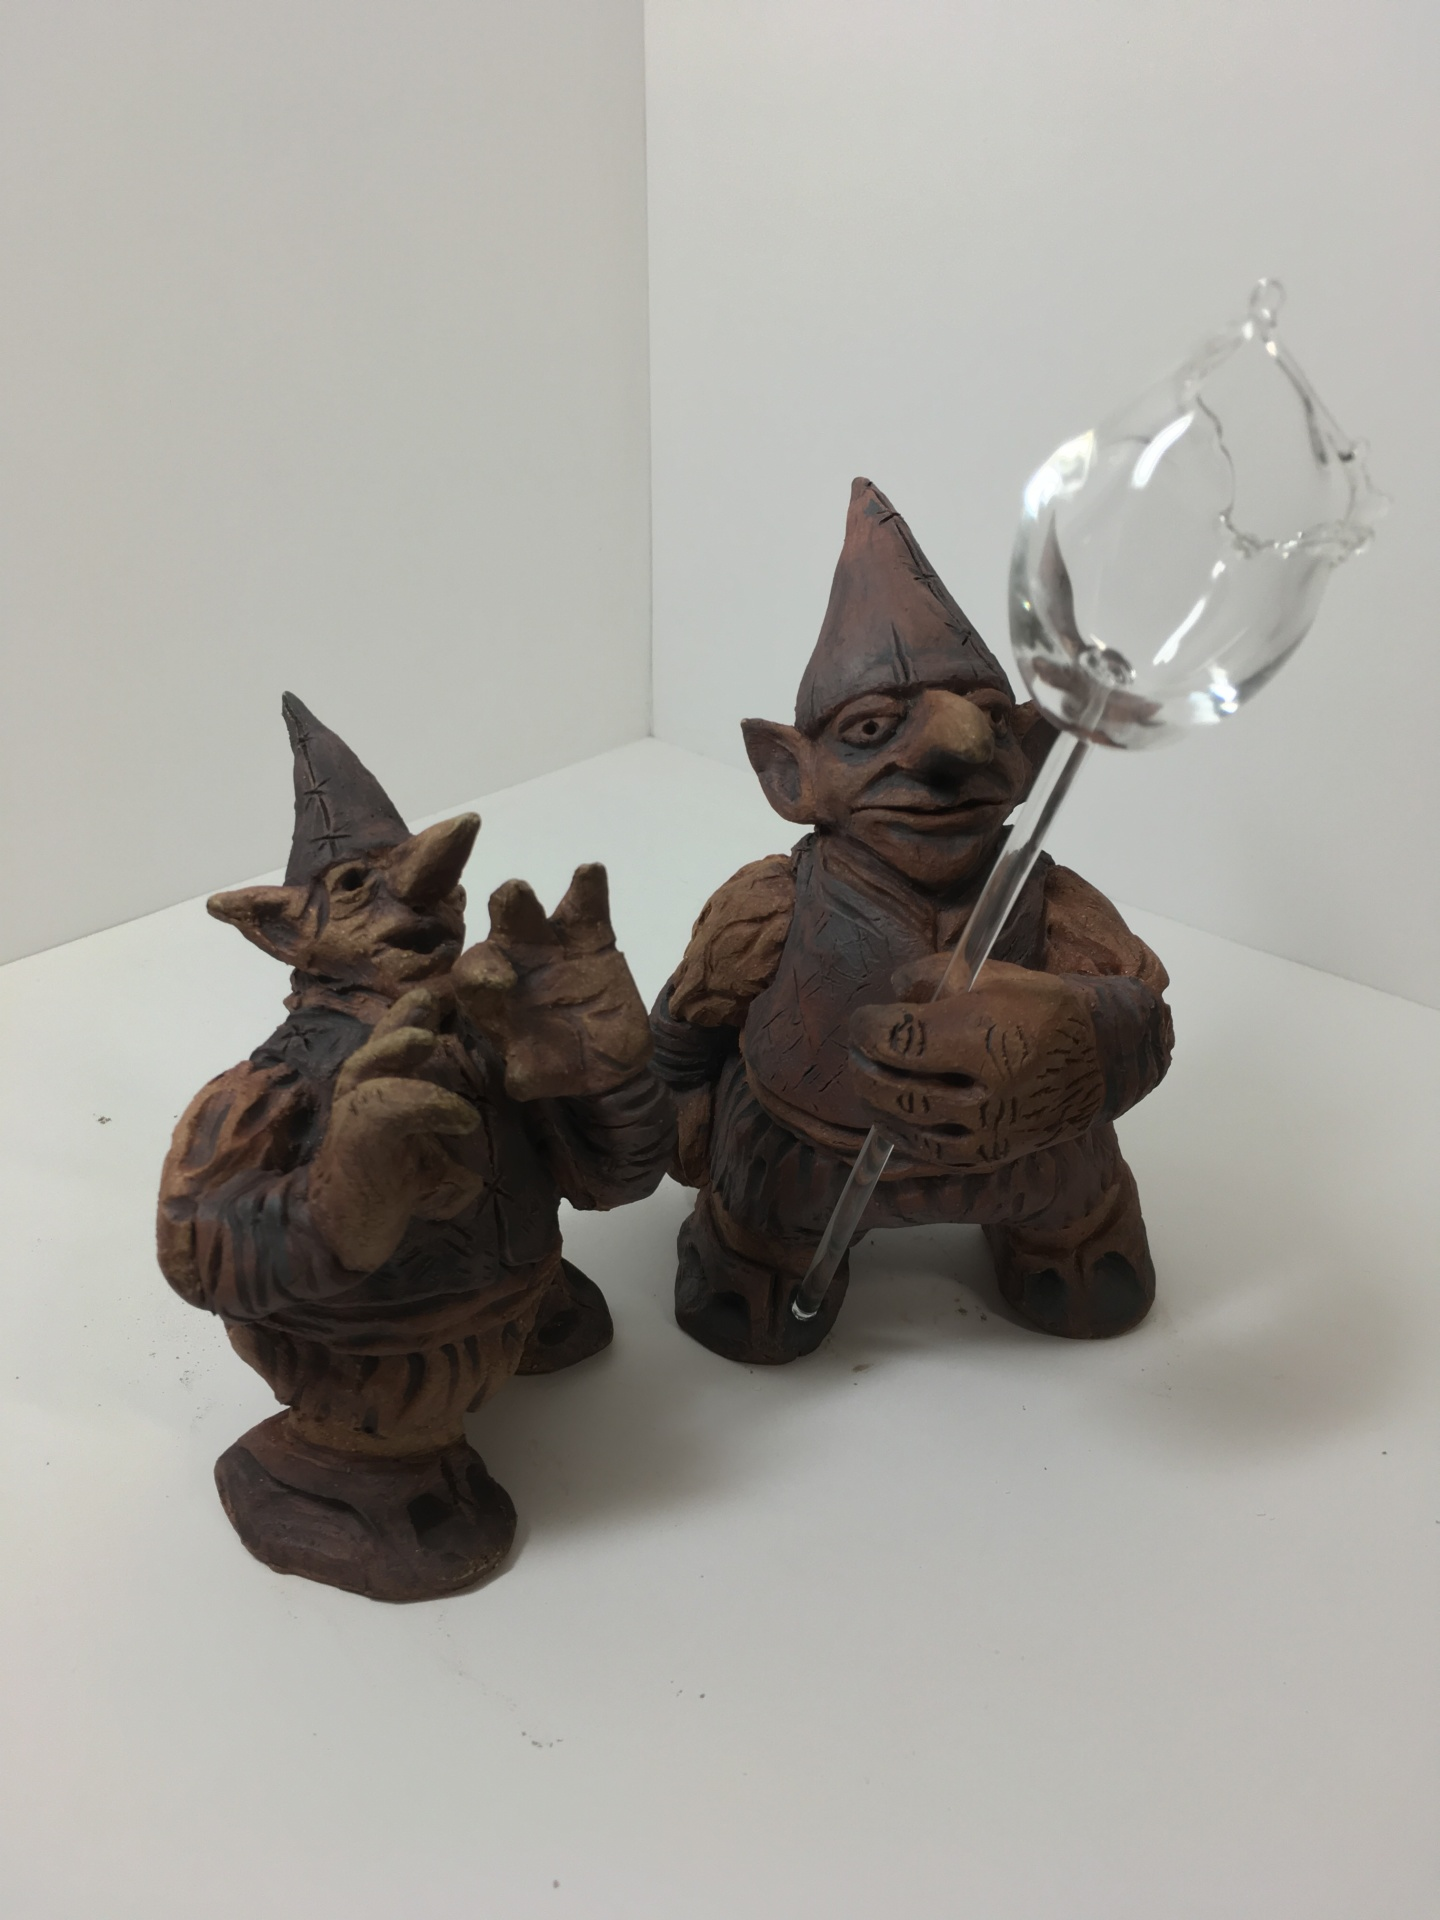 clay gnomes, pottery sculpture, science fiction sculpture, zack rudy